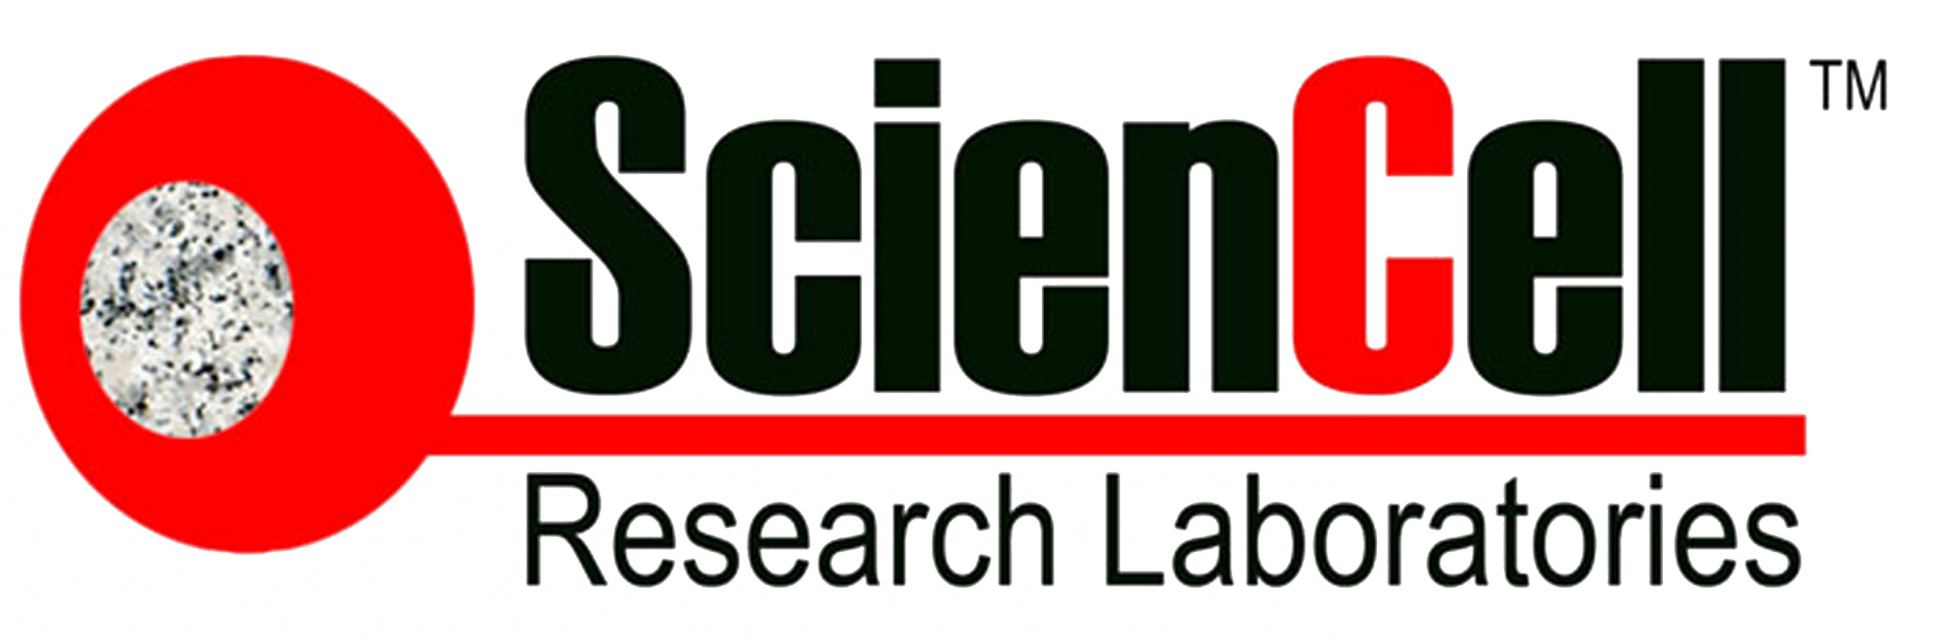 ScienCell research Laboratories Logo